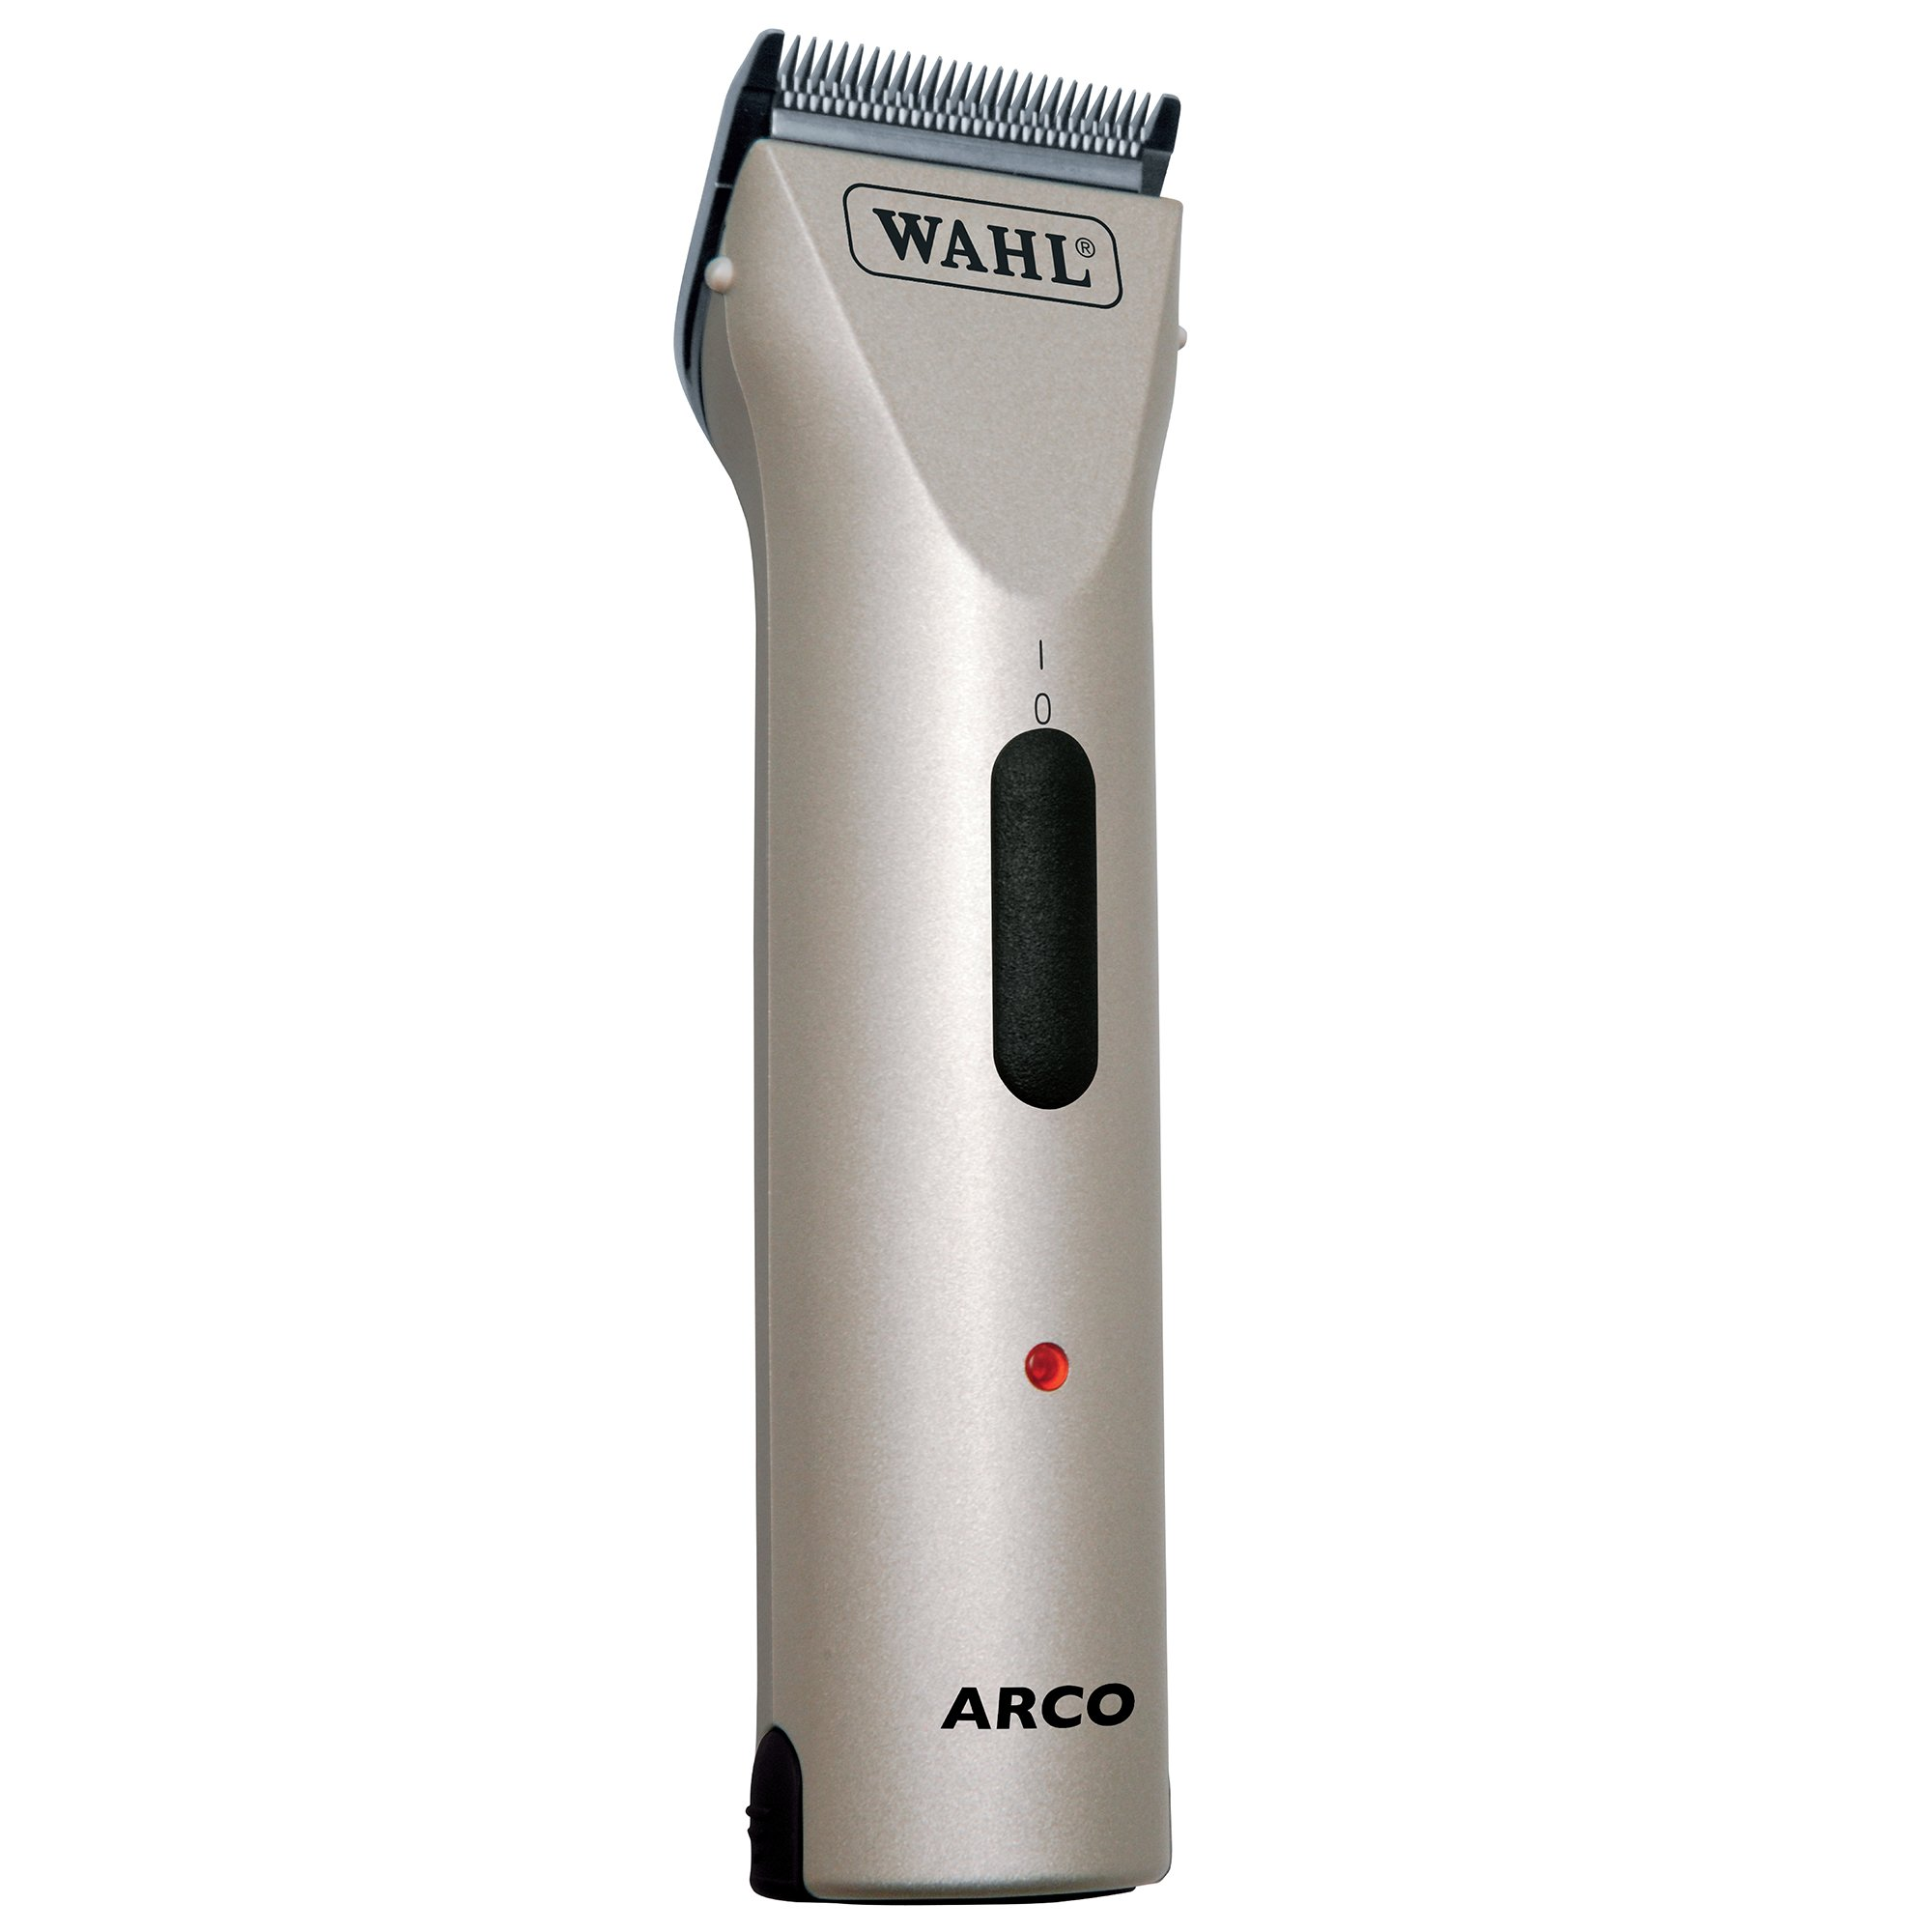 Wahl Professional Animal Arco Pet, Dog, Cat, and Horse Cordless Clipper Kit, Champagne (#8786-452) by Wahl Professional Animal